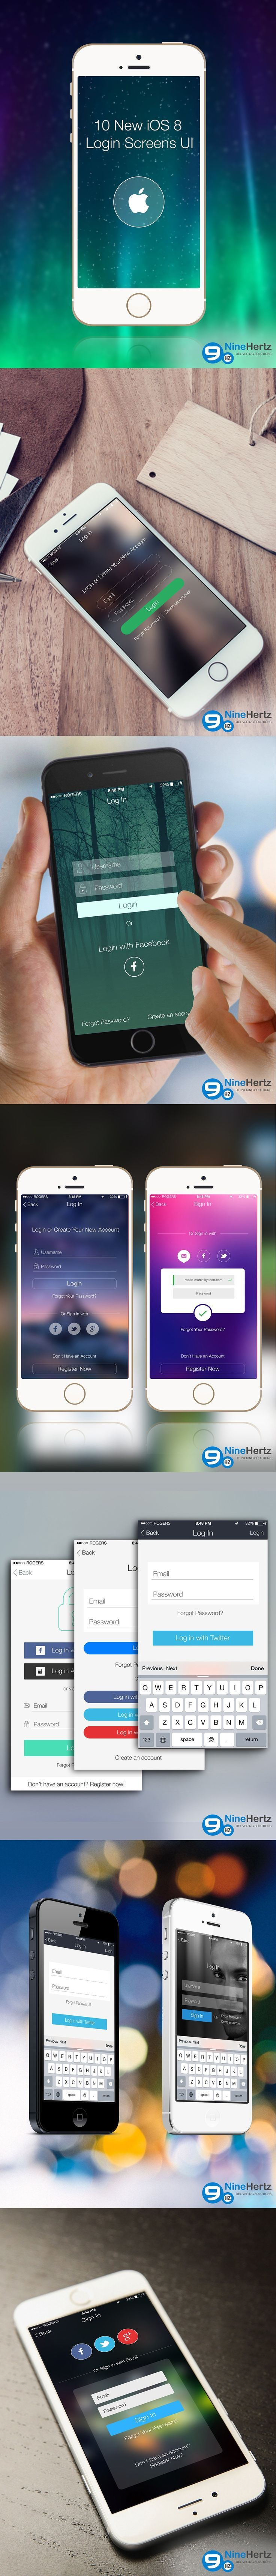 10-New-iOS-8-Login-Screen-UI-Designs